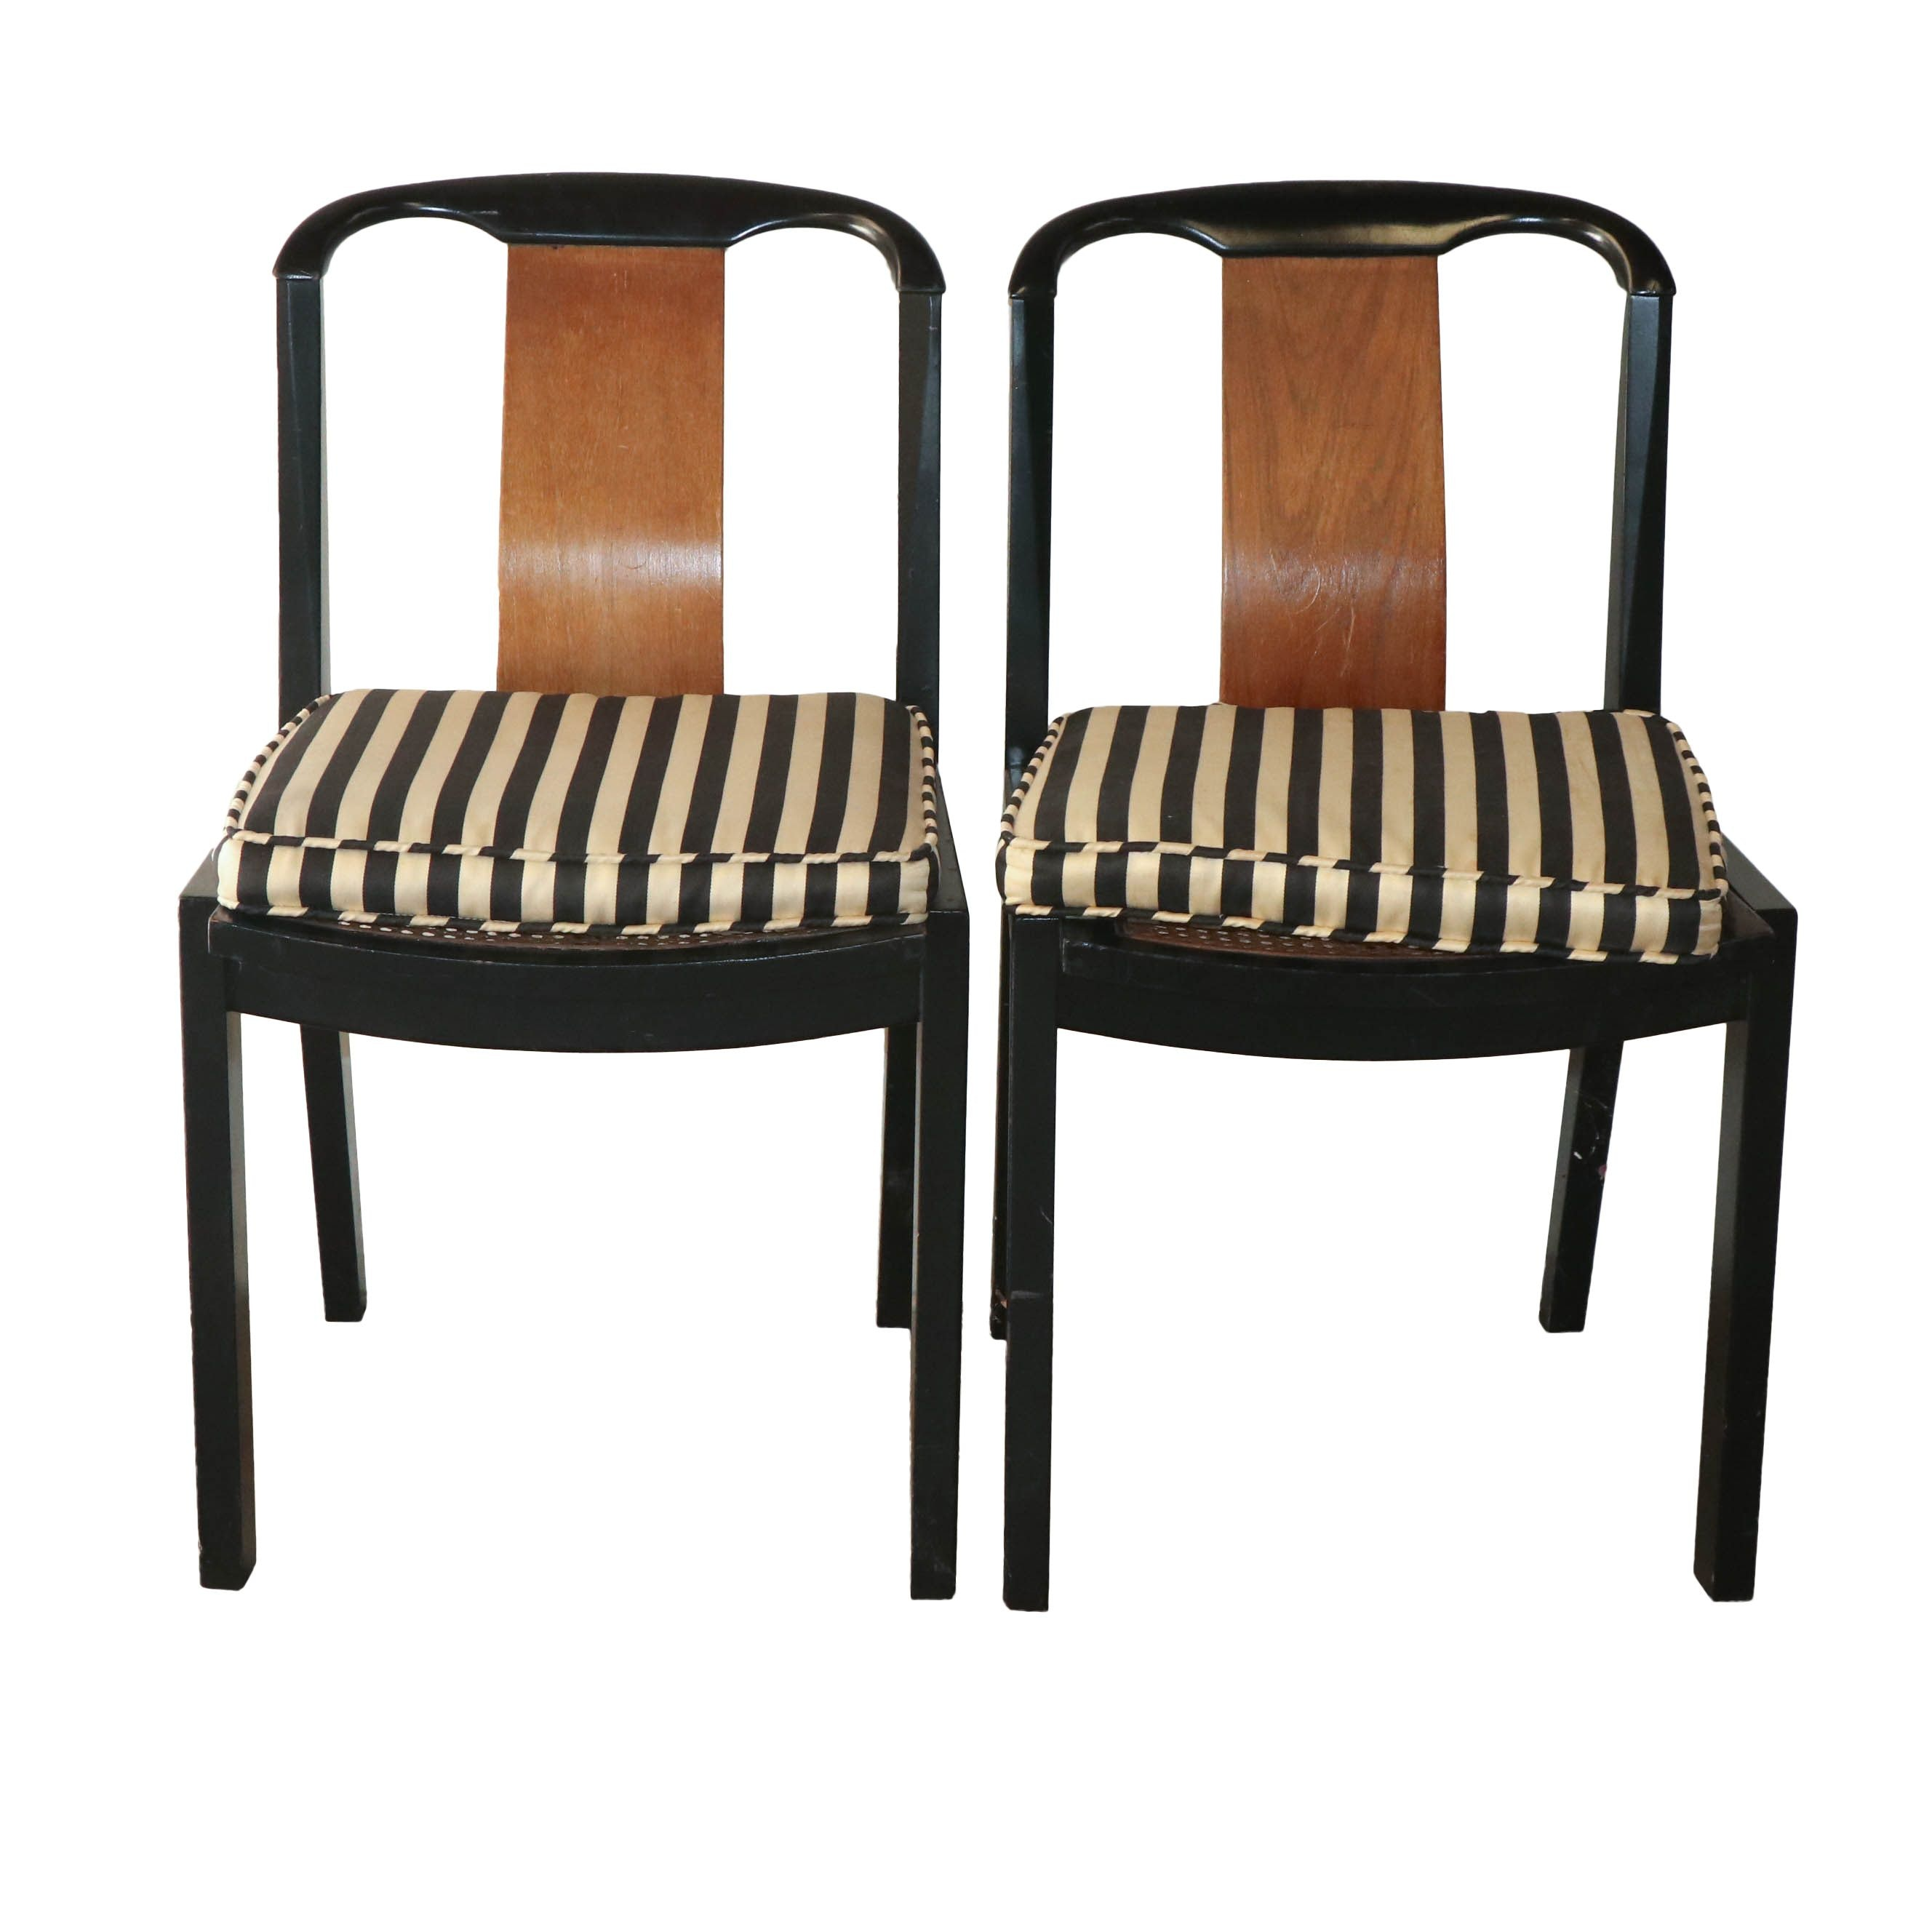 Contemporary Black Painted Side Chairs with Cane Seats